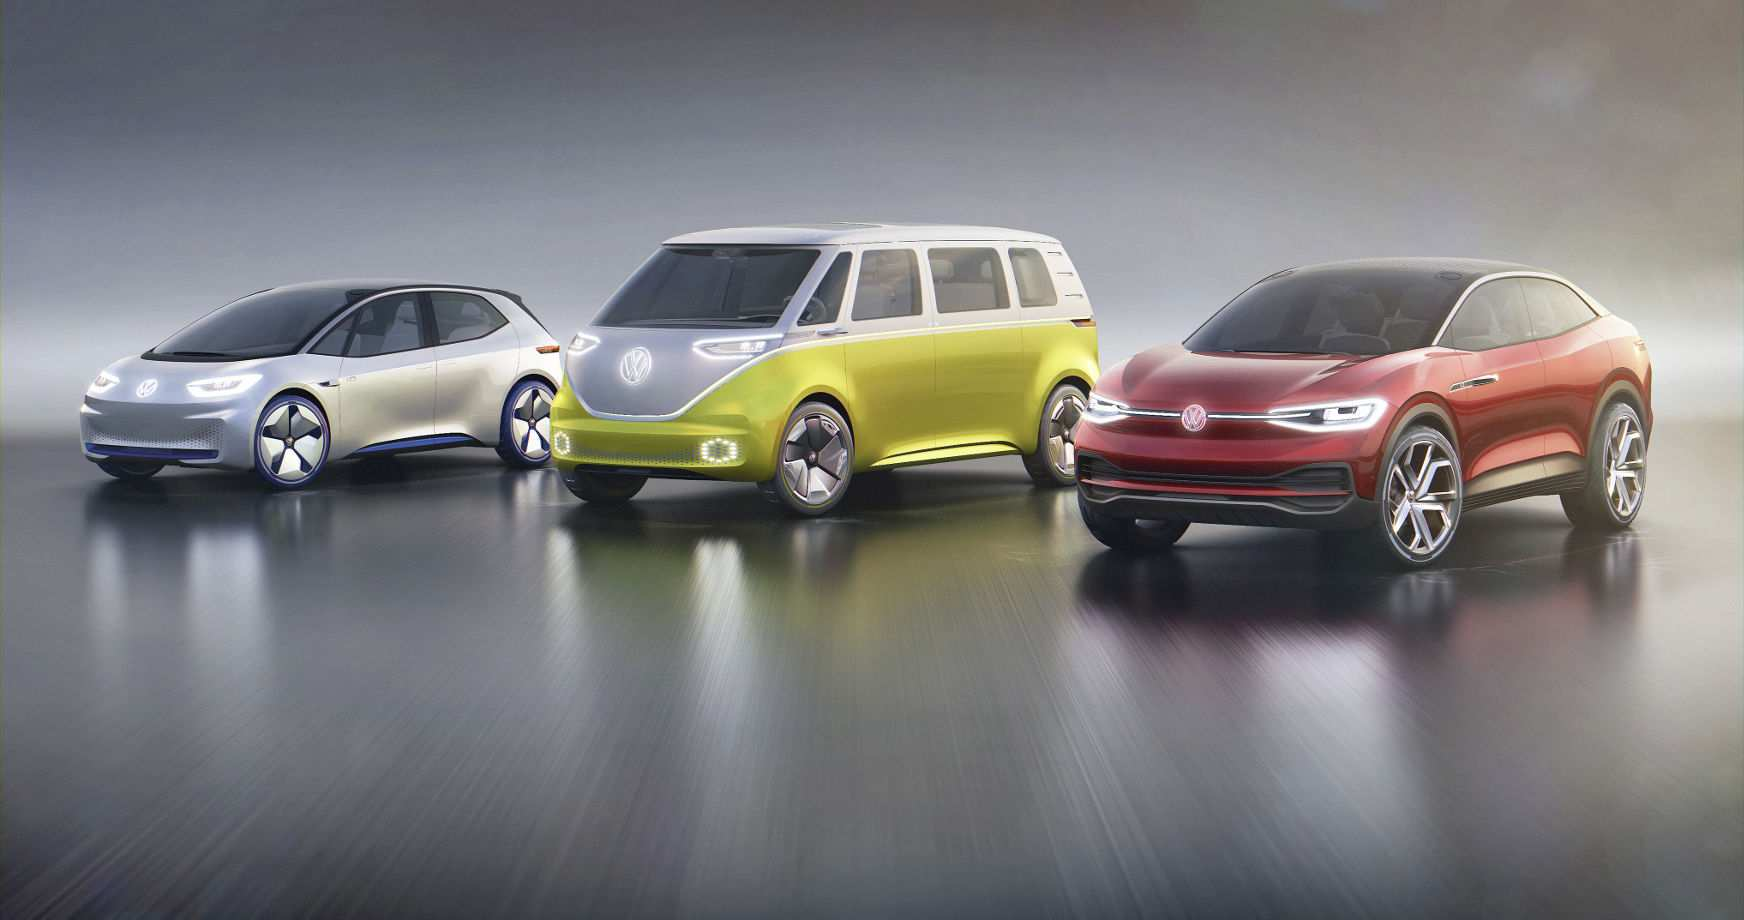 97 New Volkswagen Hibridos 2020 Photos